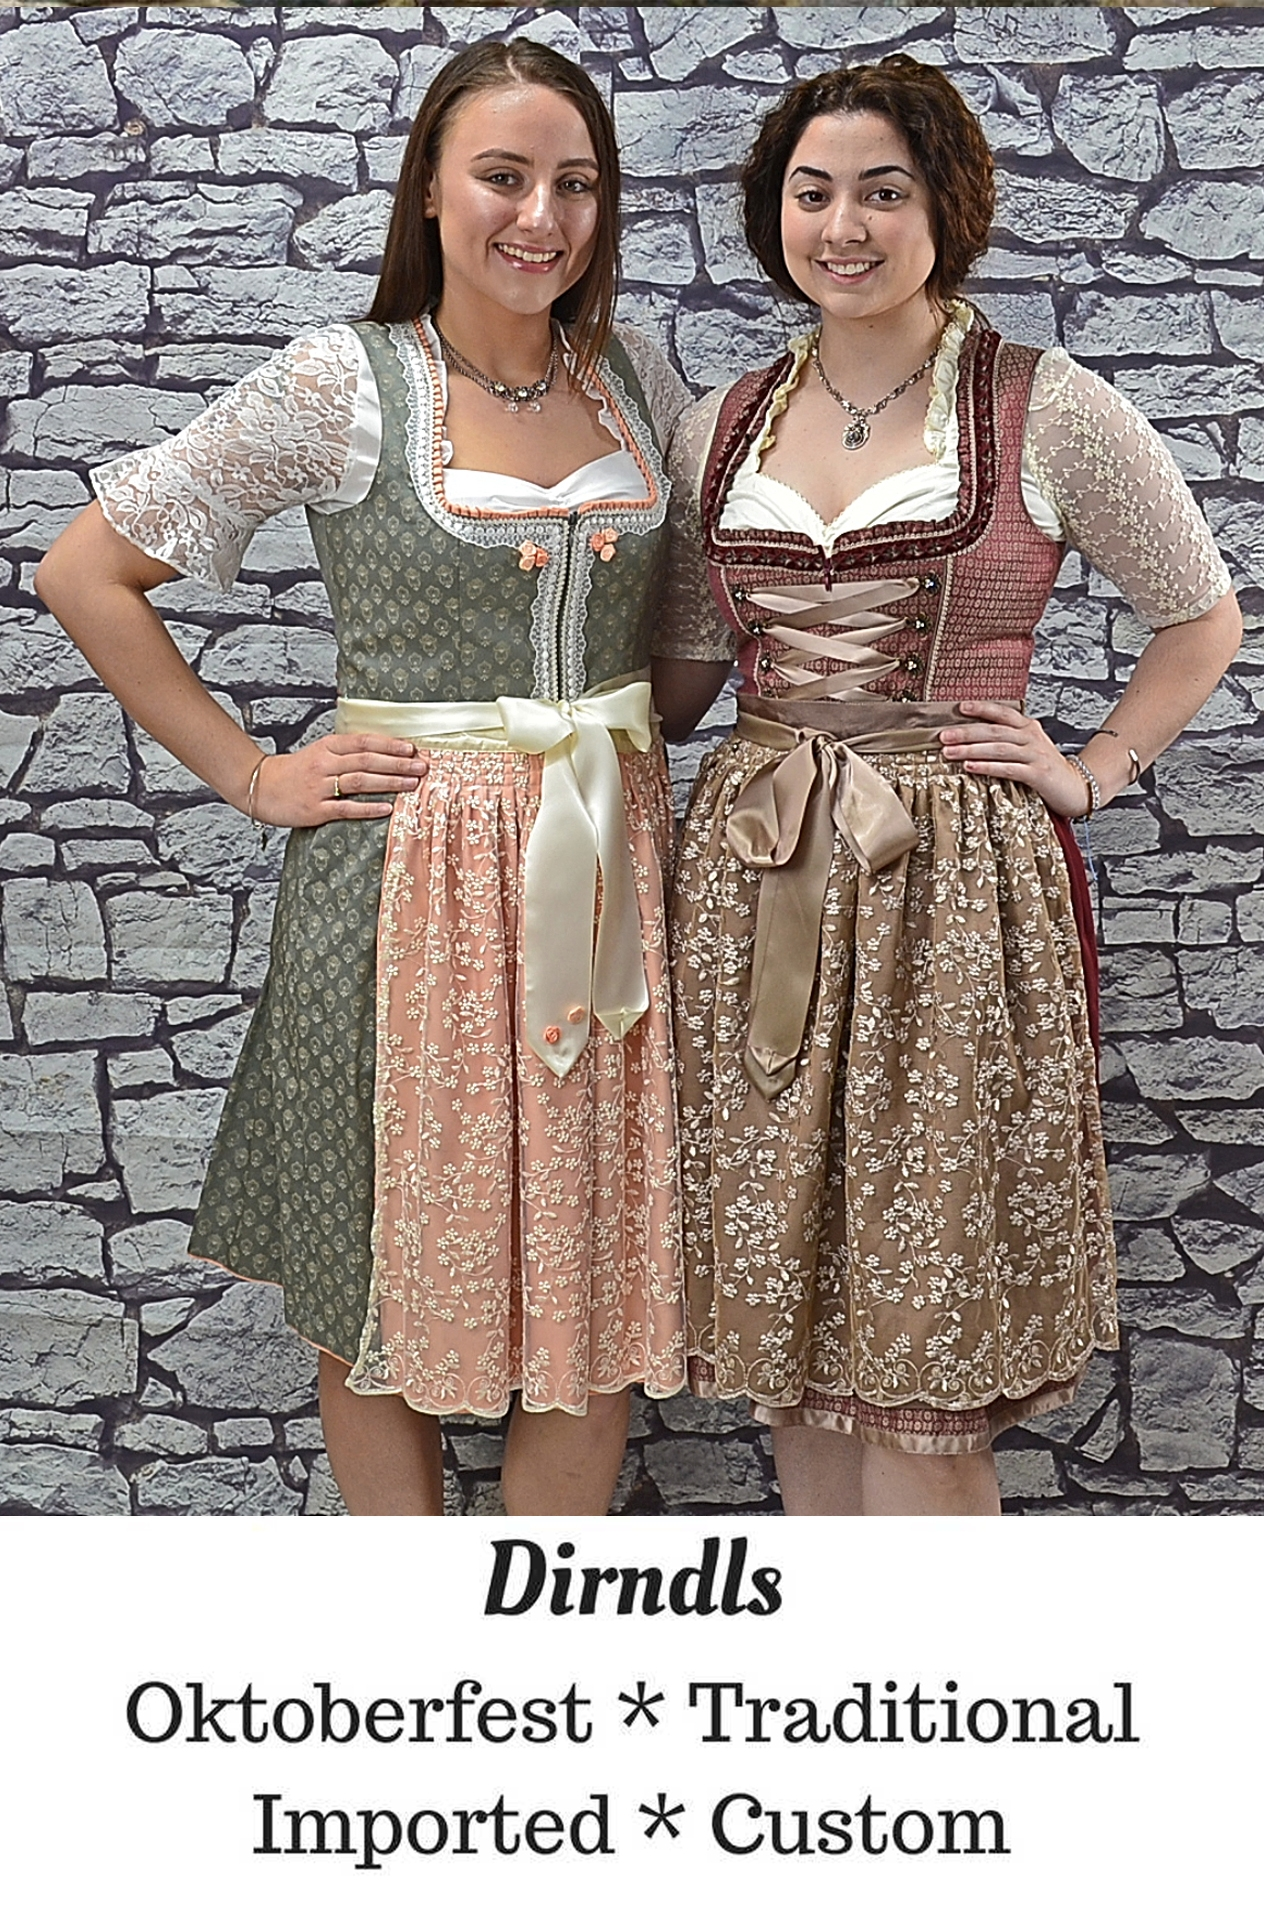 dirndl - Oktoberfest, Traditional, Imported and custom German dirndls